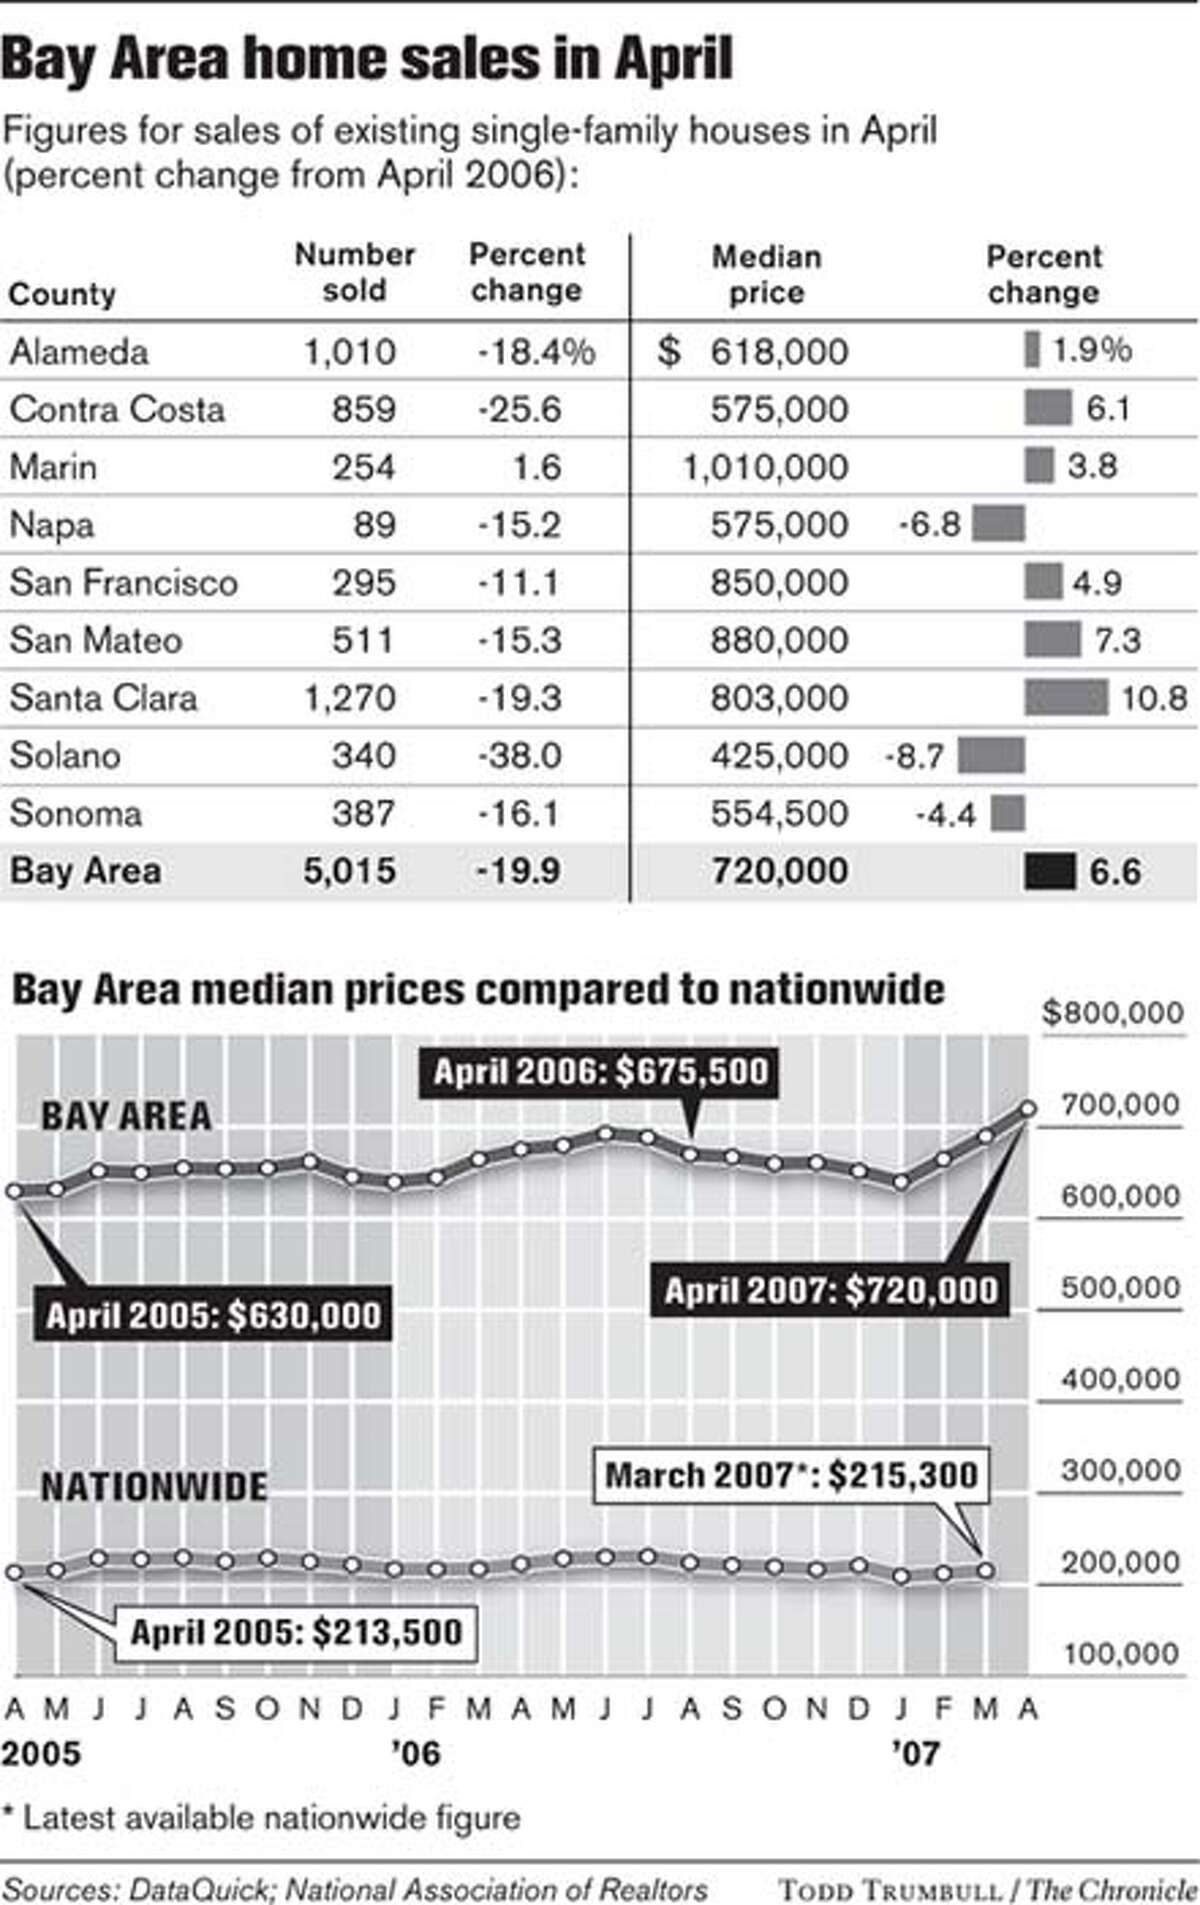 Bay Area home sales in April. Chronicle graphic by Todd Trumbull